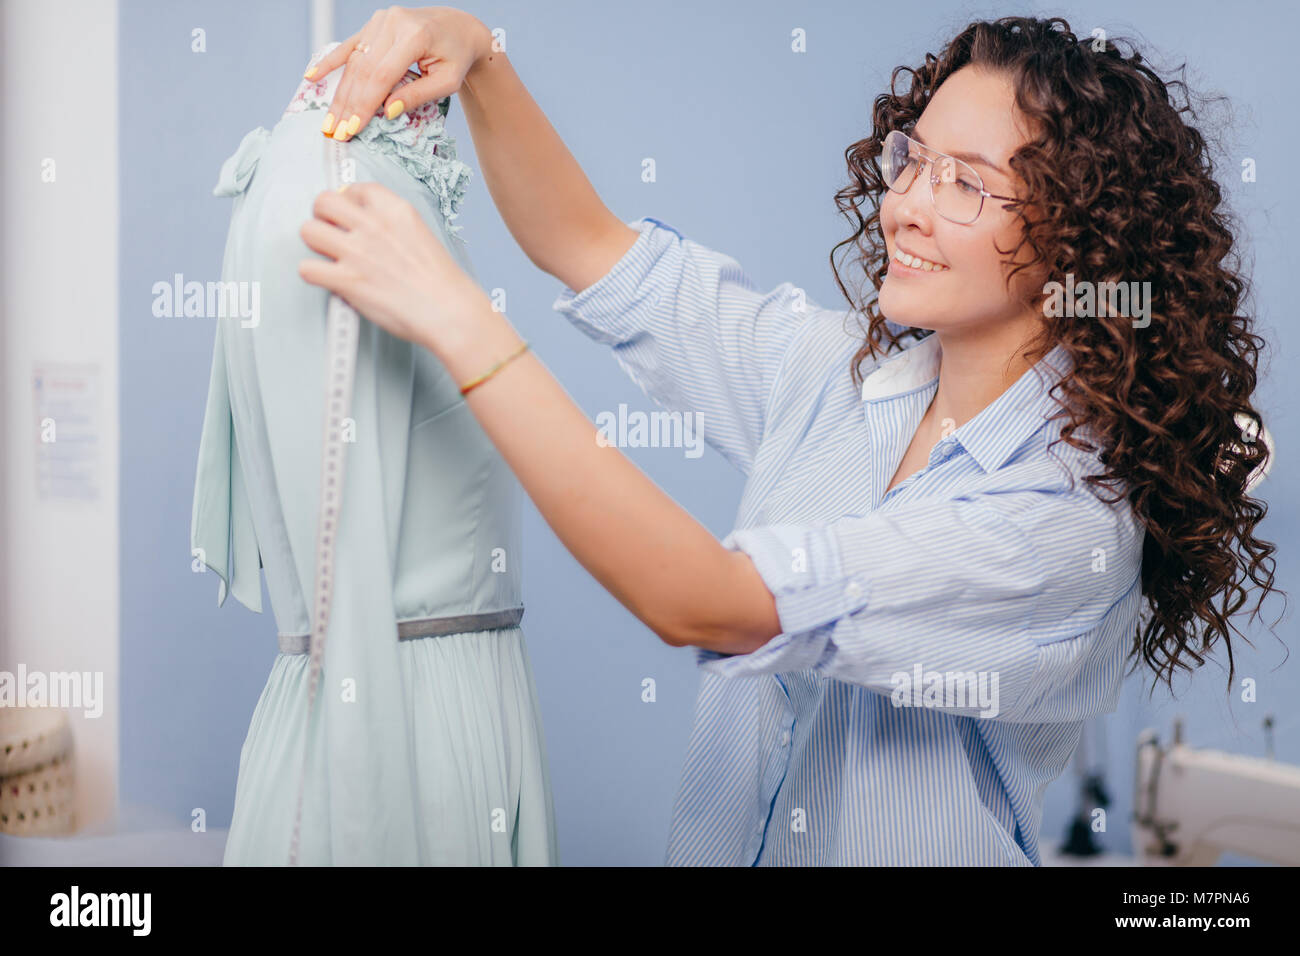 Woman tailor working with dummyin room. measuring shoulder with flexible ruler - Stock Image